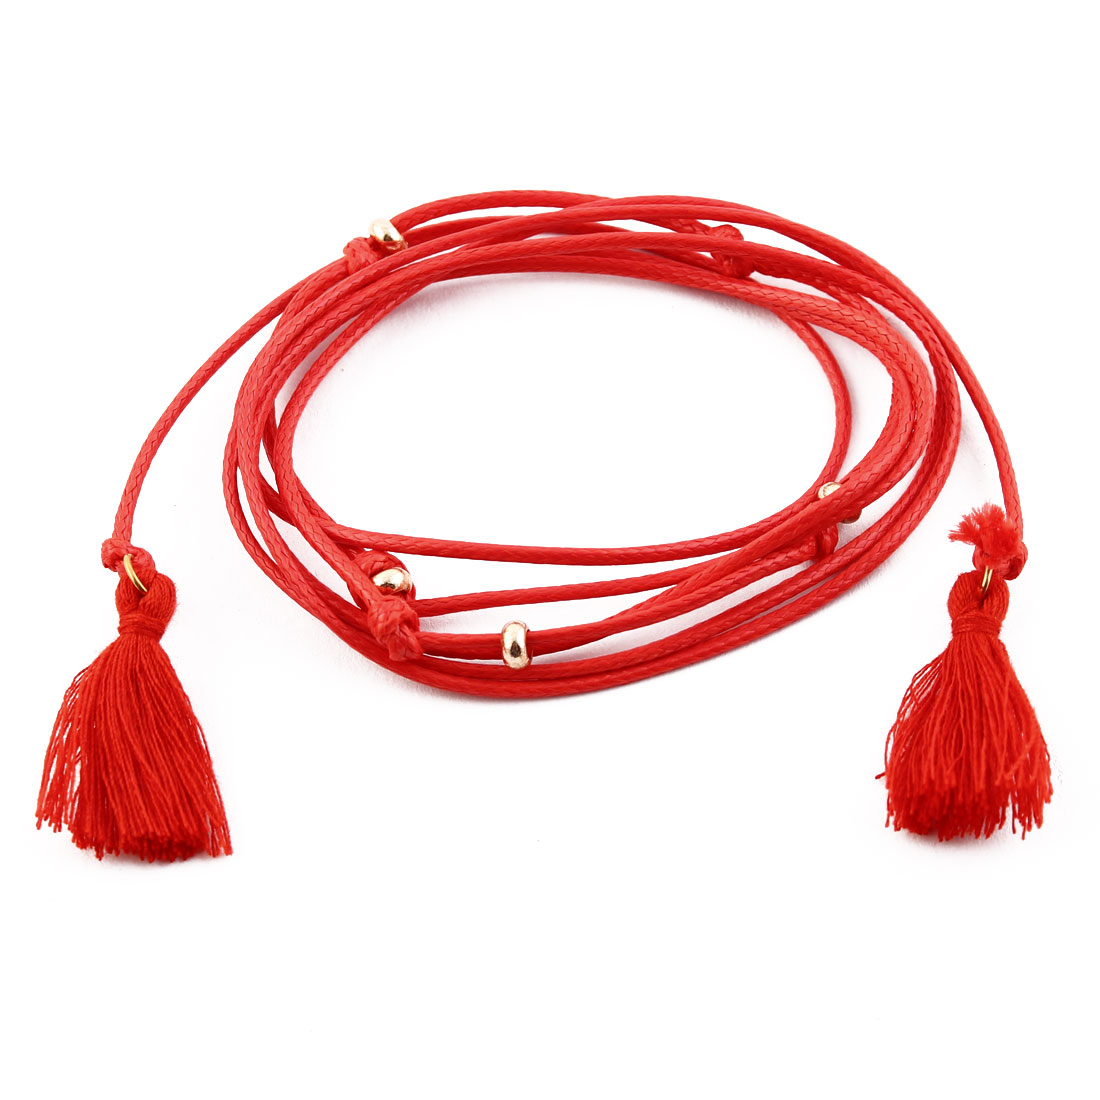 Women Lady Nylon Tassel Decor Adjustable Choker Necklace DIY Neck Chain Red